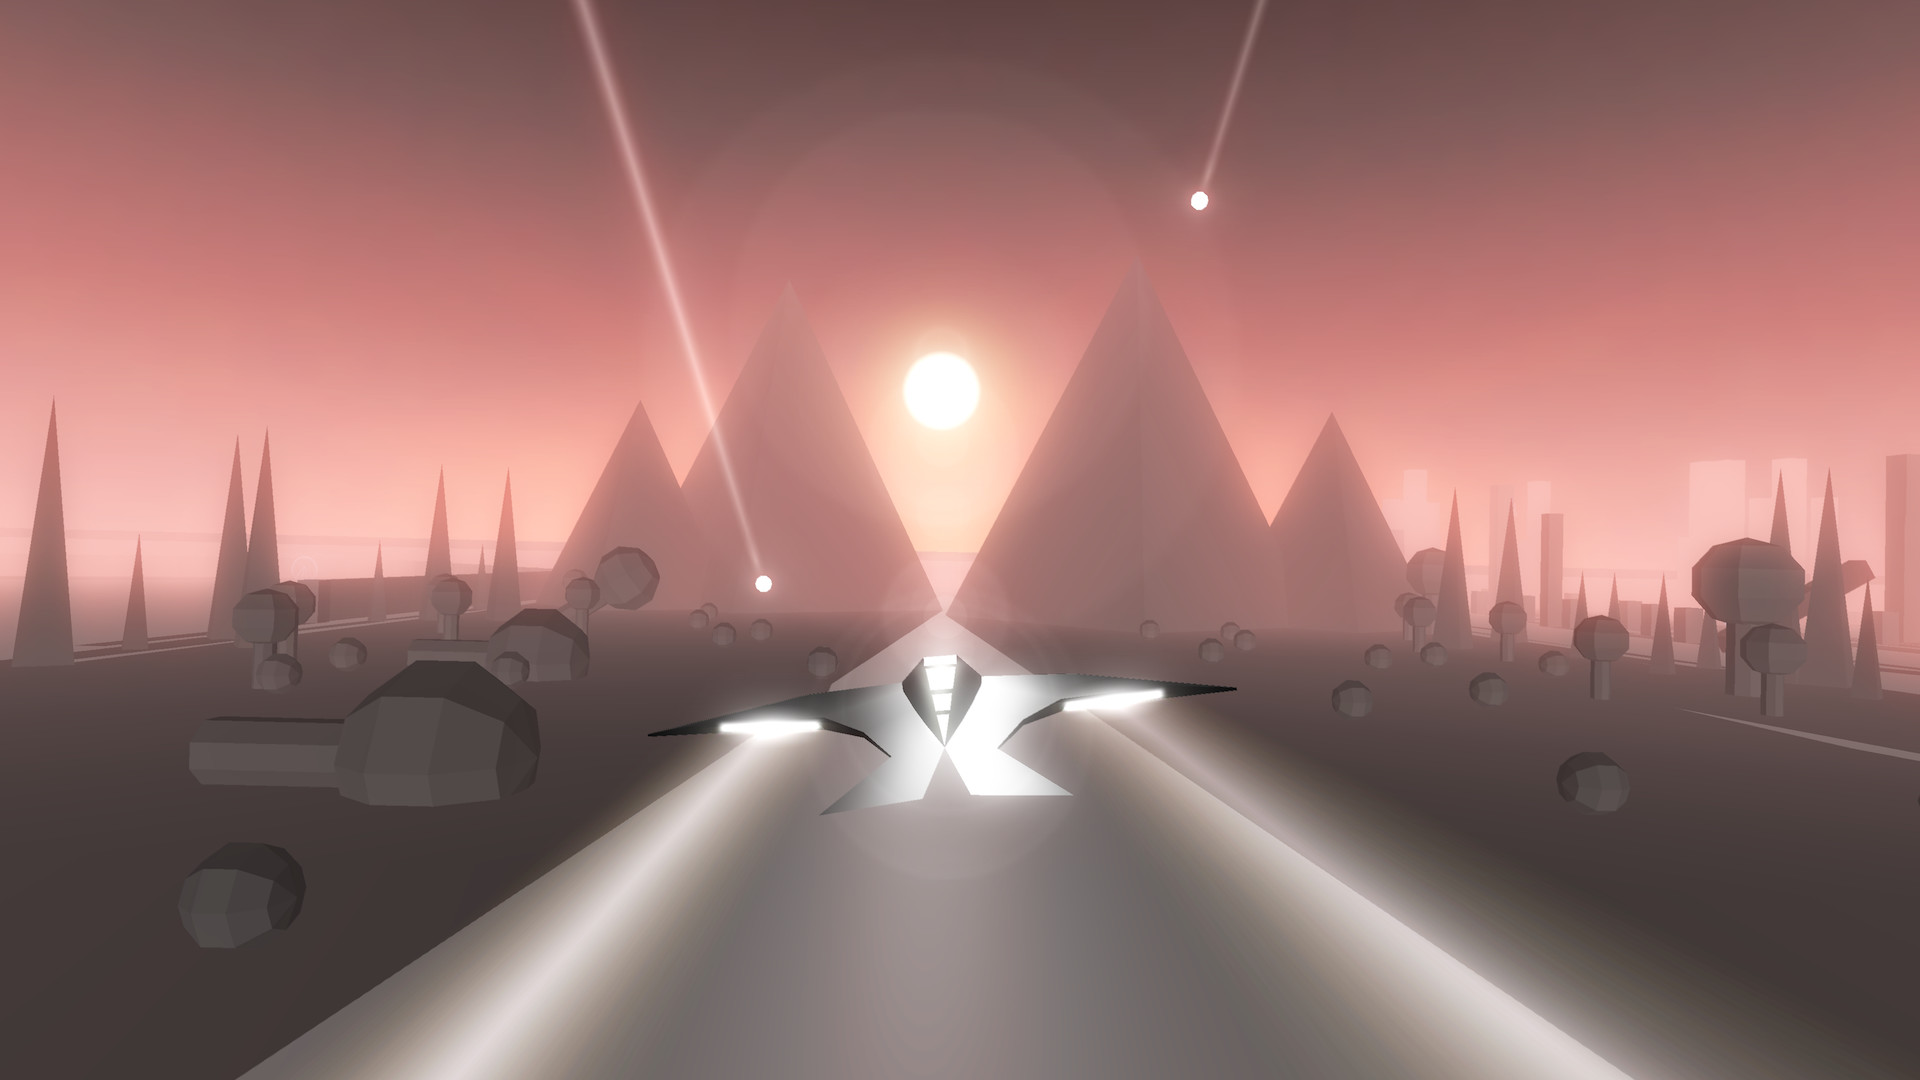 Race The Sun screenshot 2